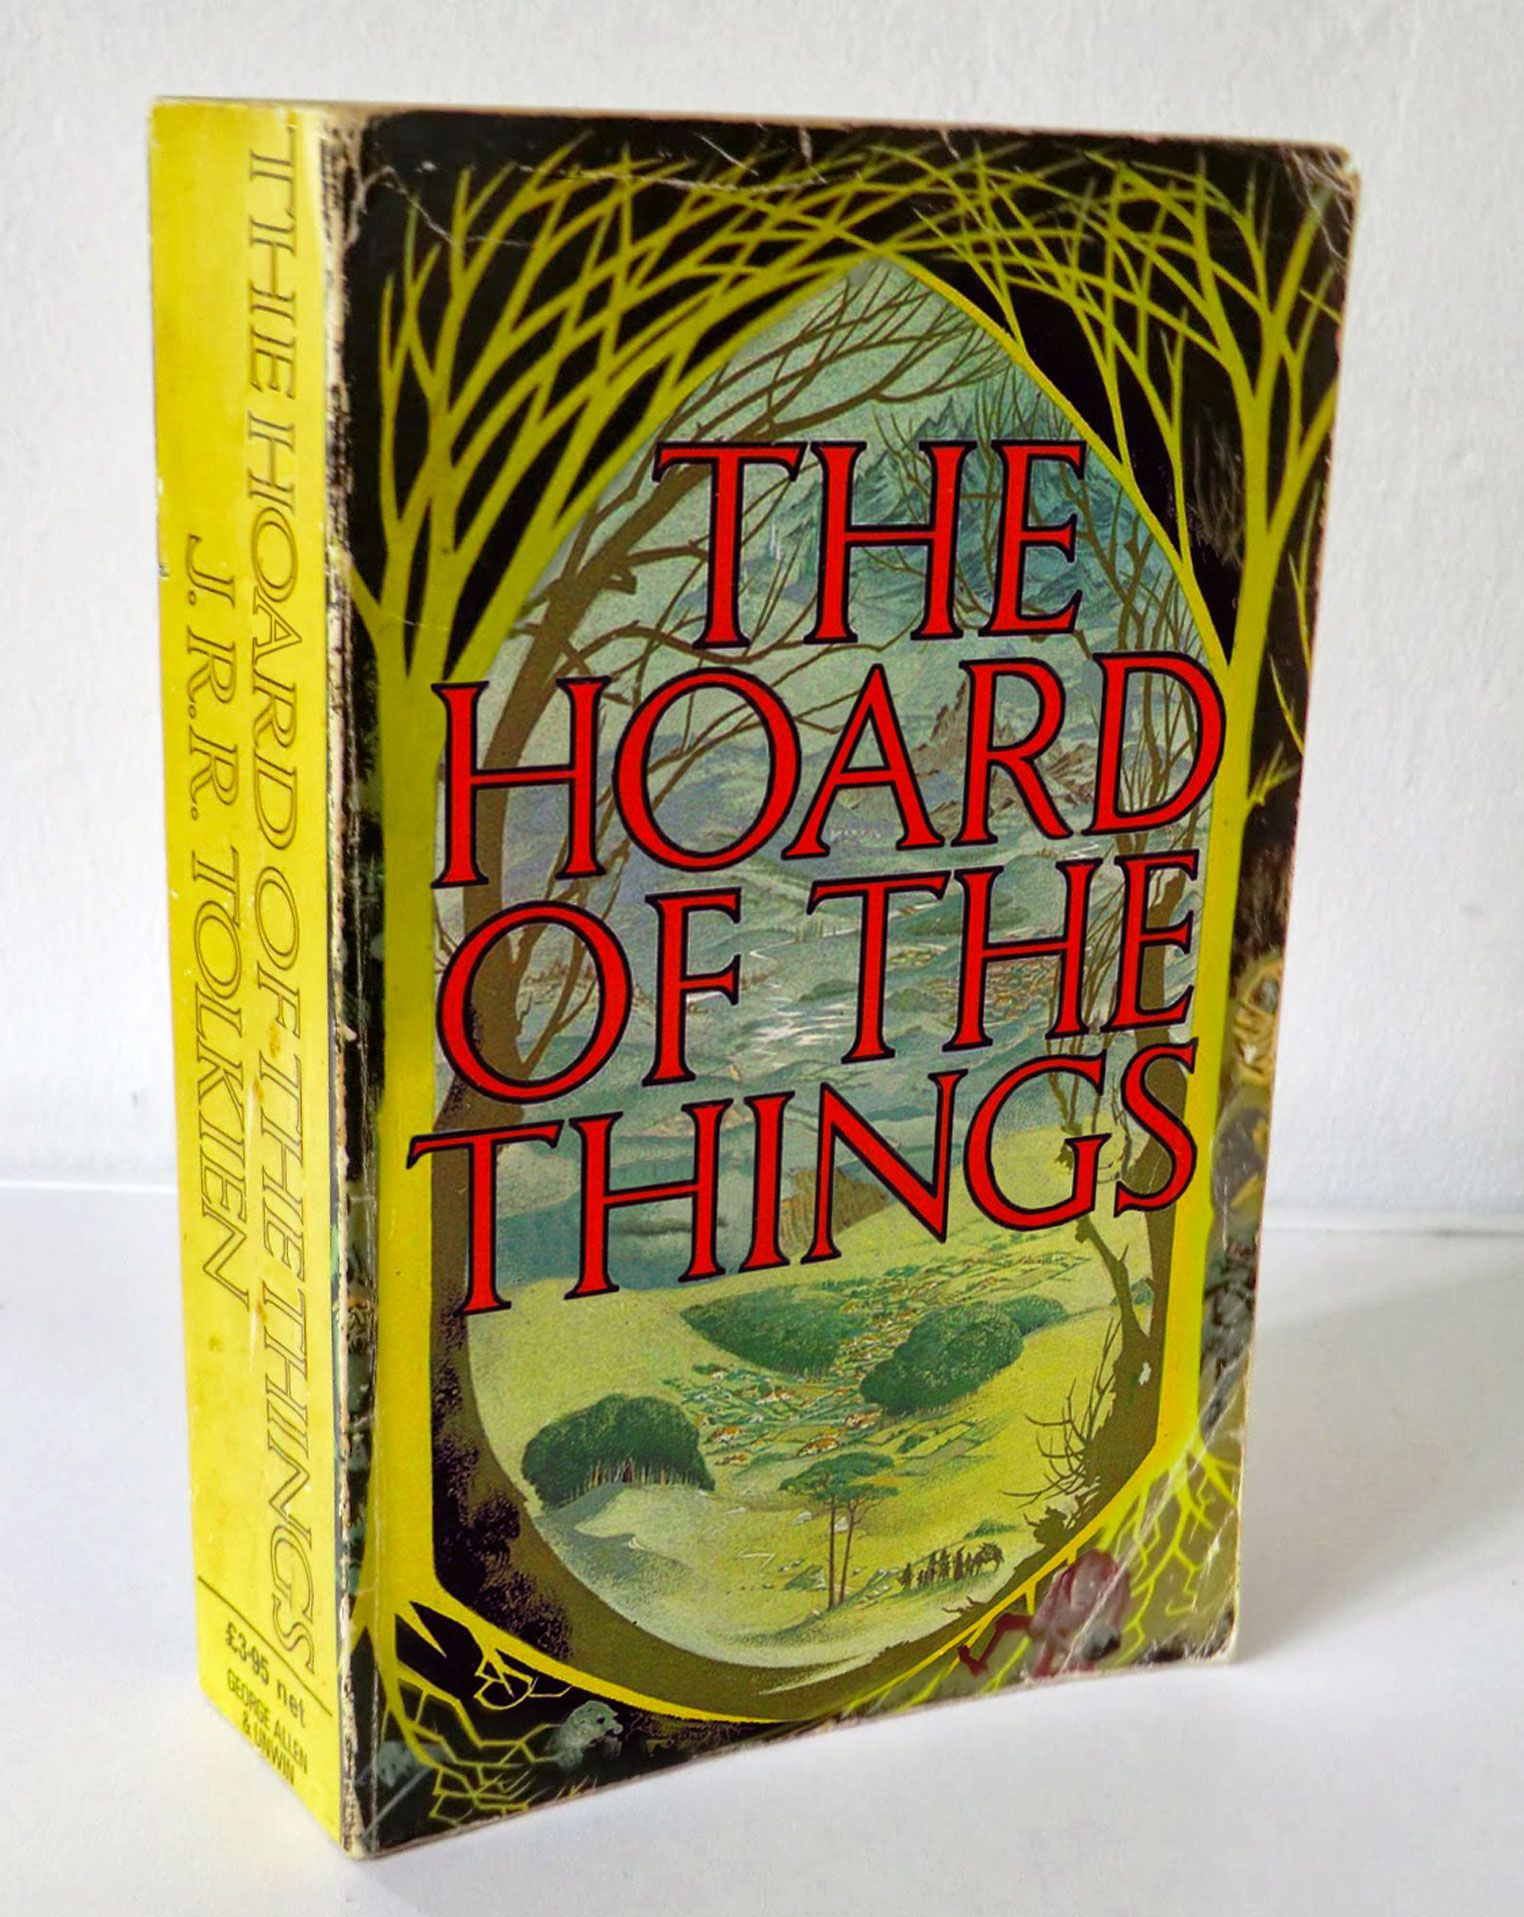 The Hoard of the Things (The Lord of the Rings, by J. R. R. Tolkien)